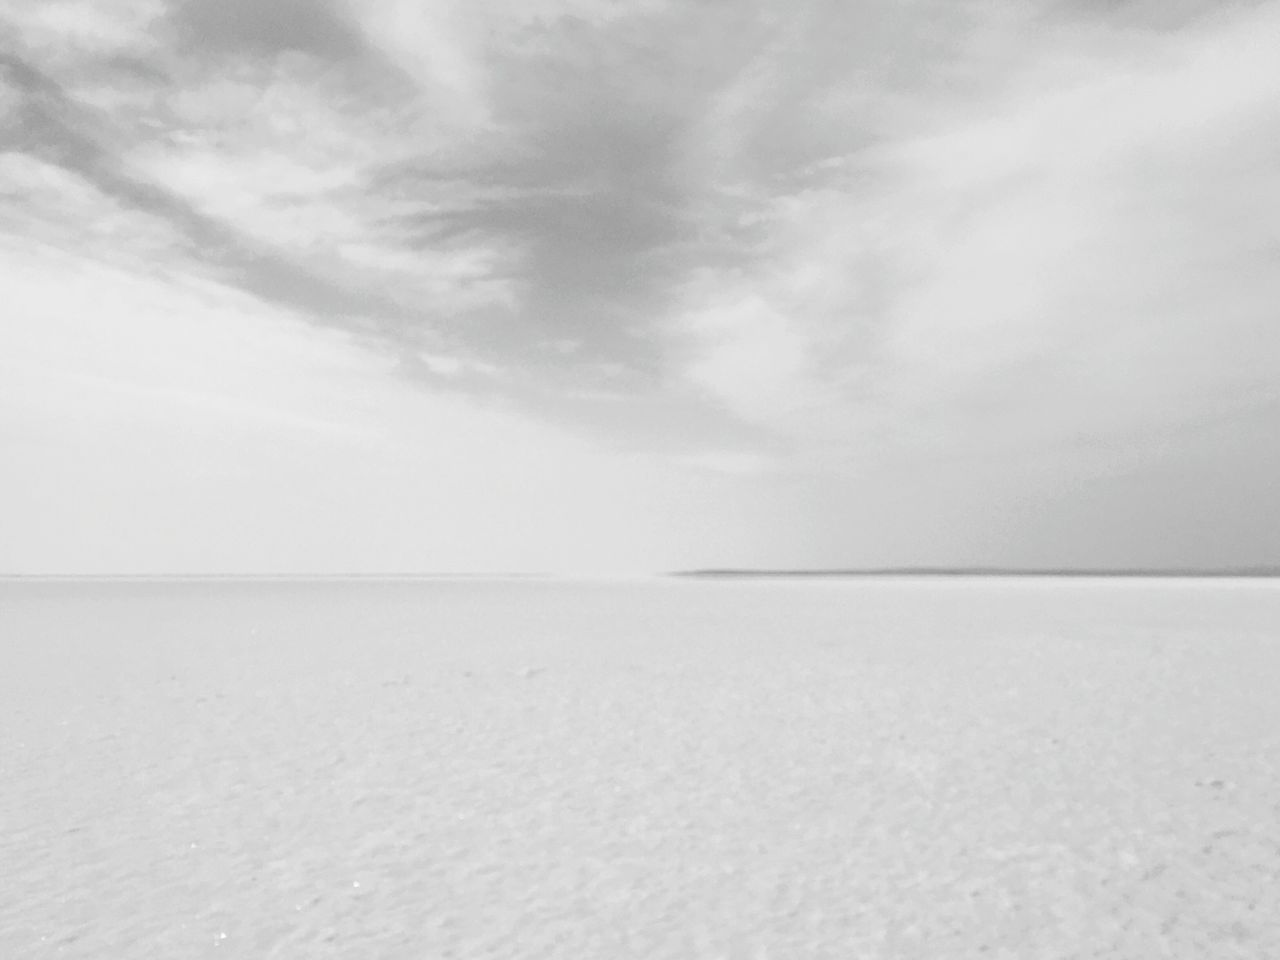 Adapted To The City Salt Lake Turkey Sky Horizon Over Land White Color No People Salt Flat Outdoors Beauty In Nature Saltwater